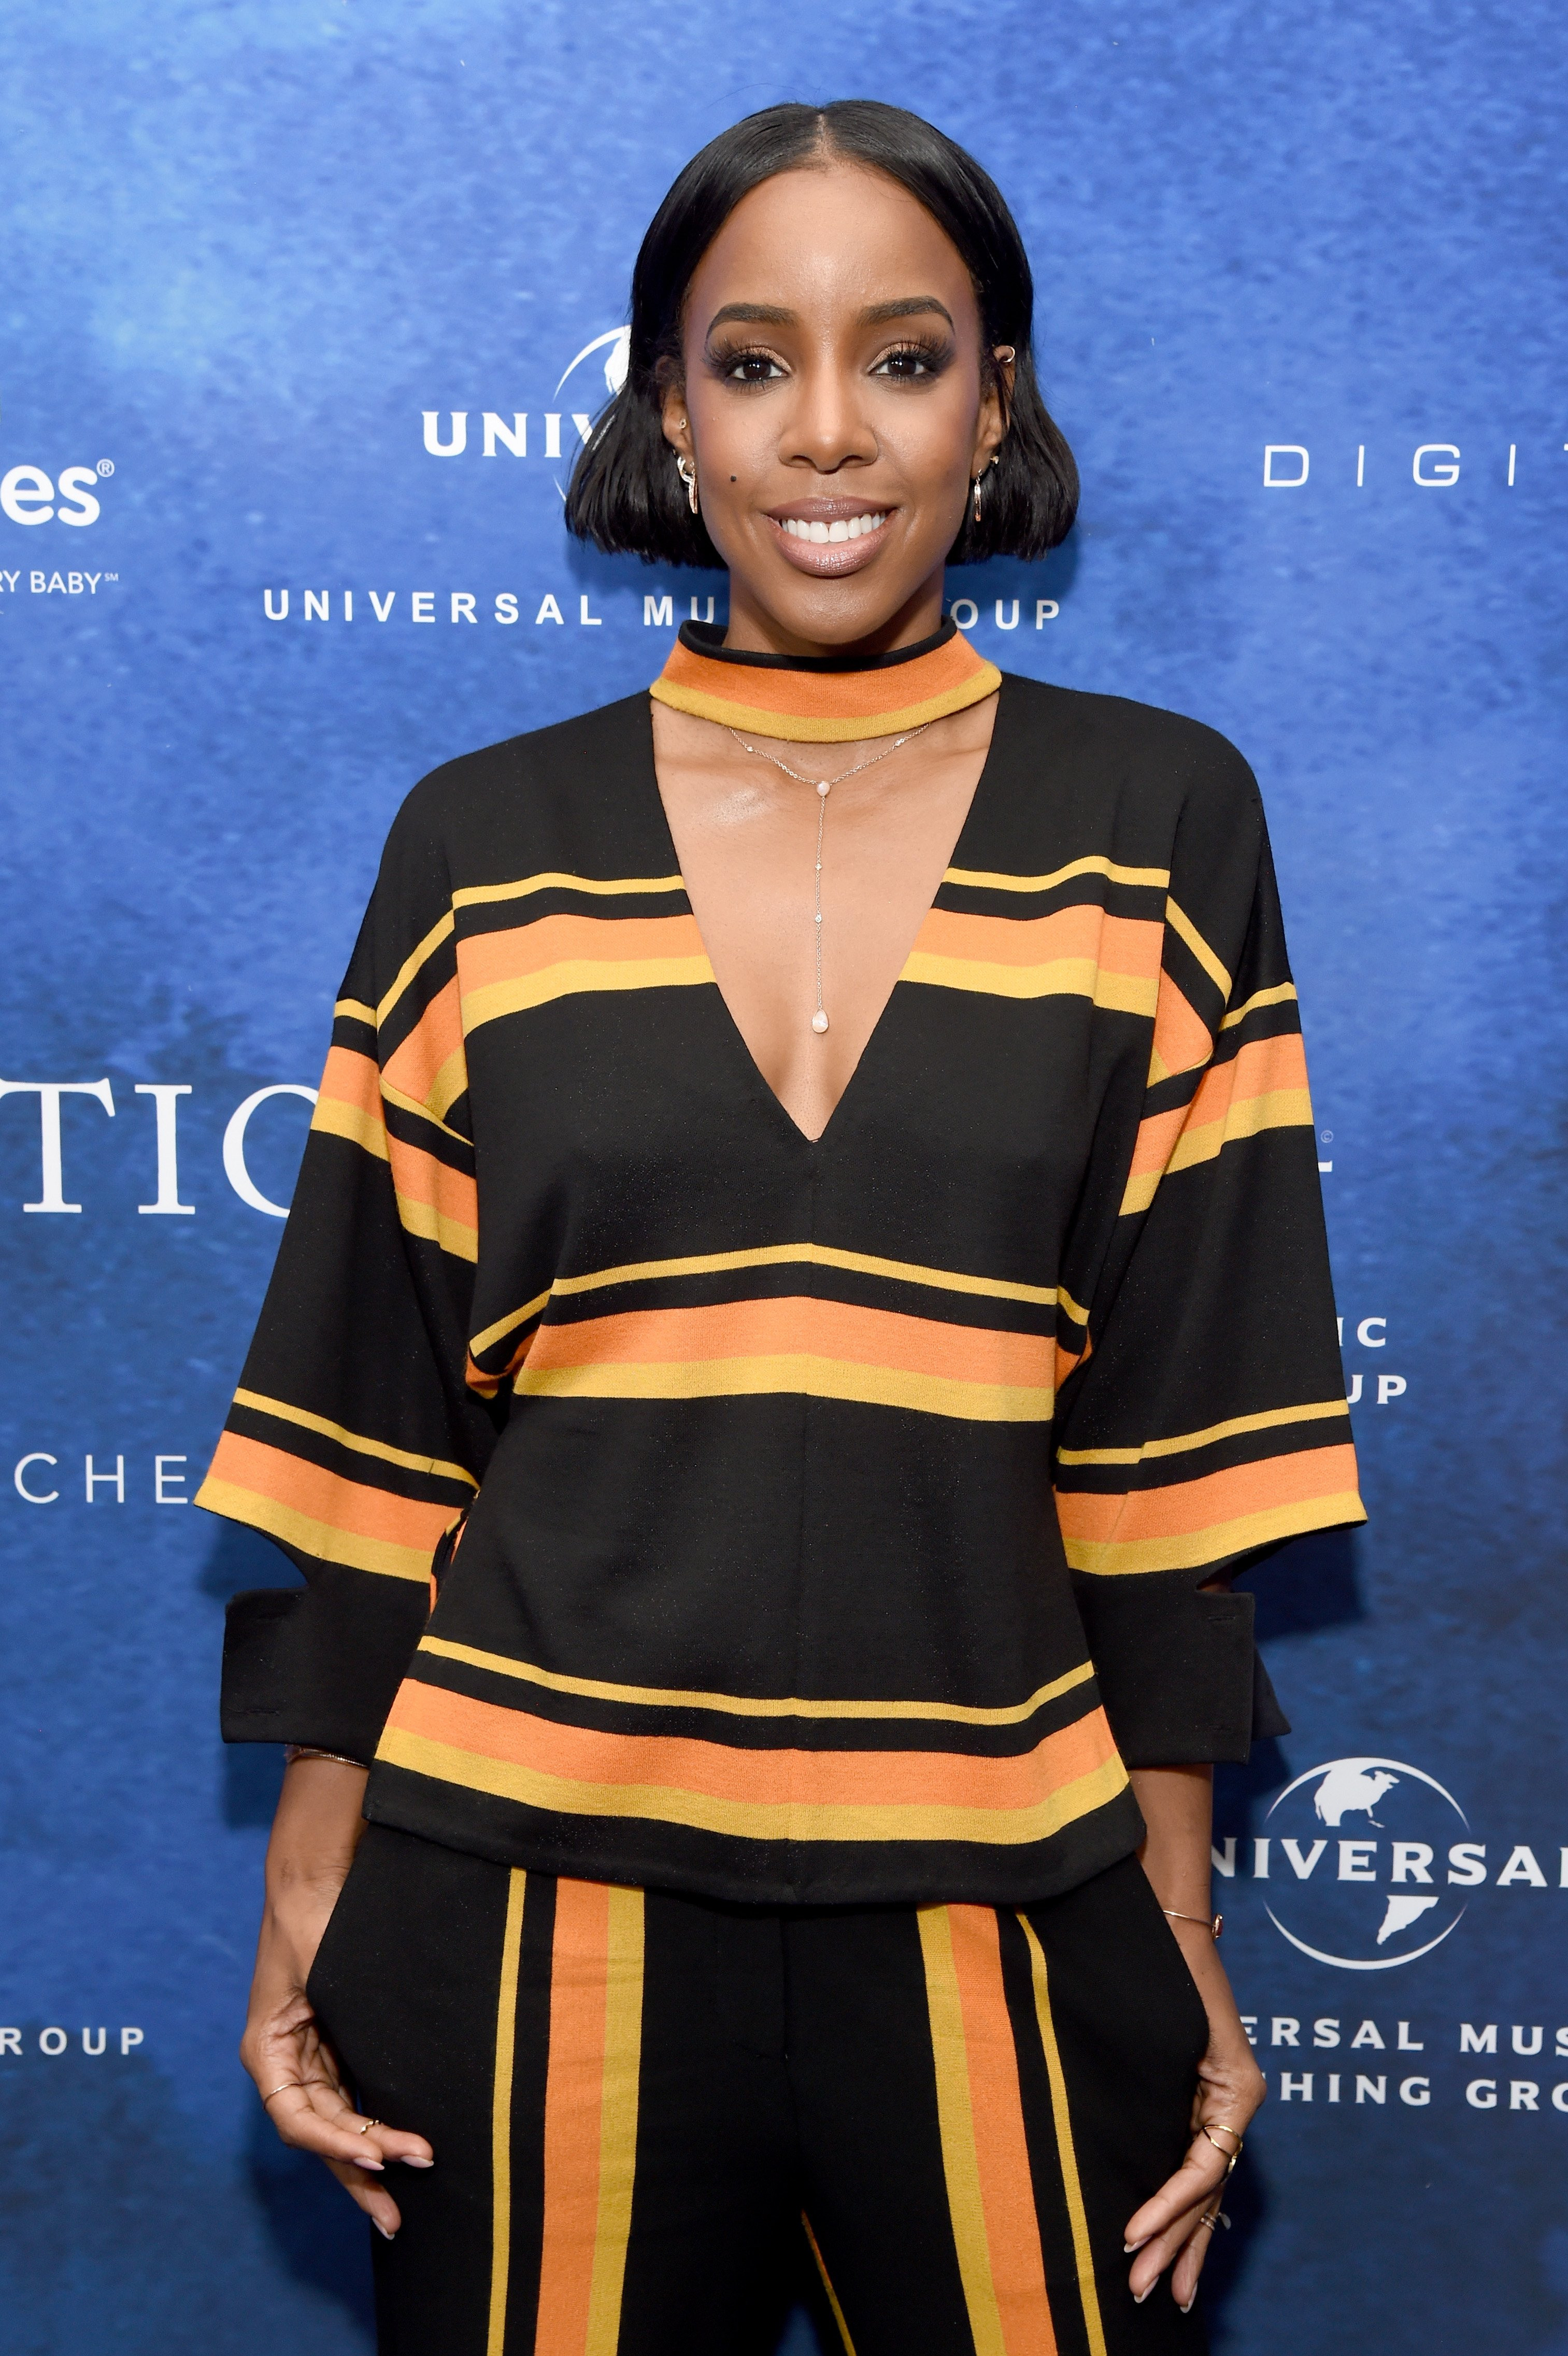 Kelly Rowland attends the 2016 March of Dimes Celebration of Babies at Beverly Wilshire Four Seasons Hotel on December 9, 2016. | Photo: Getty Images